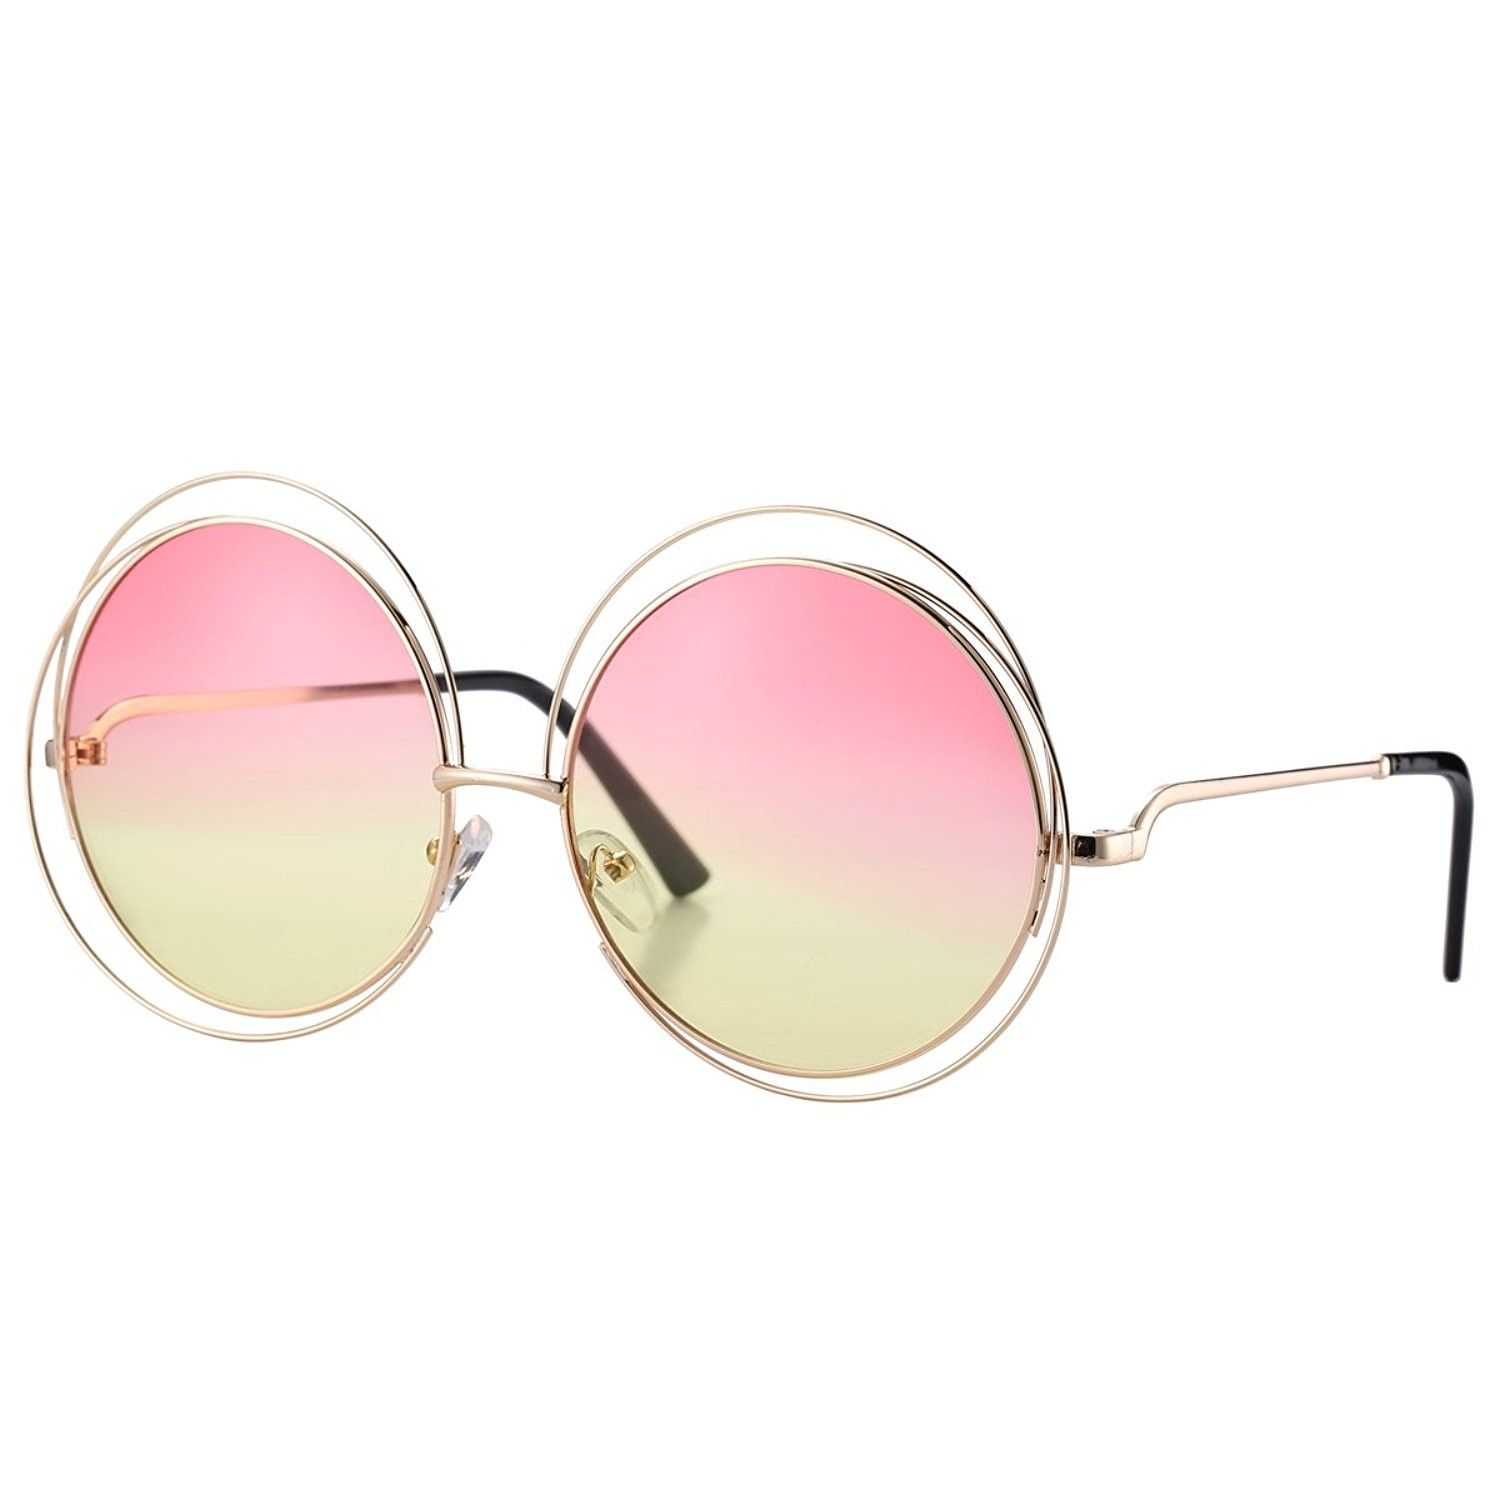 afc1a80048e Women s Double Circle Metal Wire Frame Oversized Round Sunglasses - Pink  Yellow Gradient - C912NZXF68B